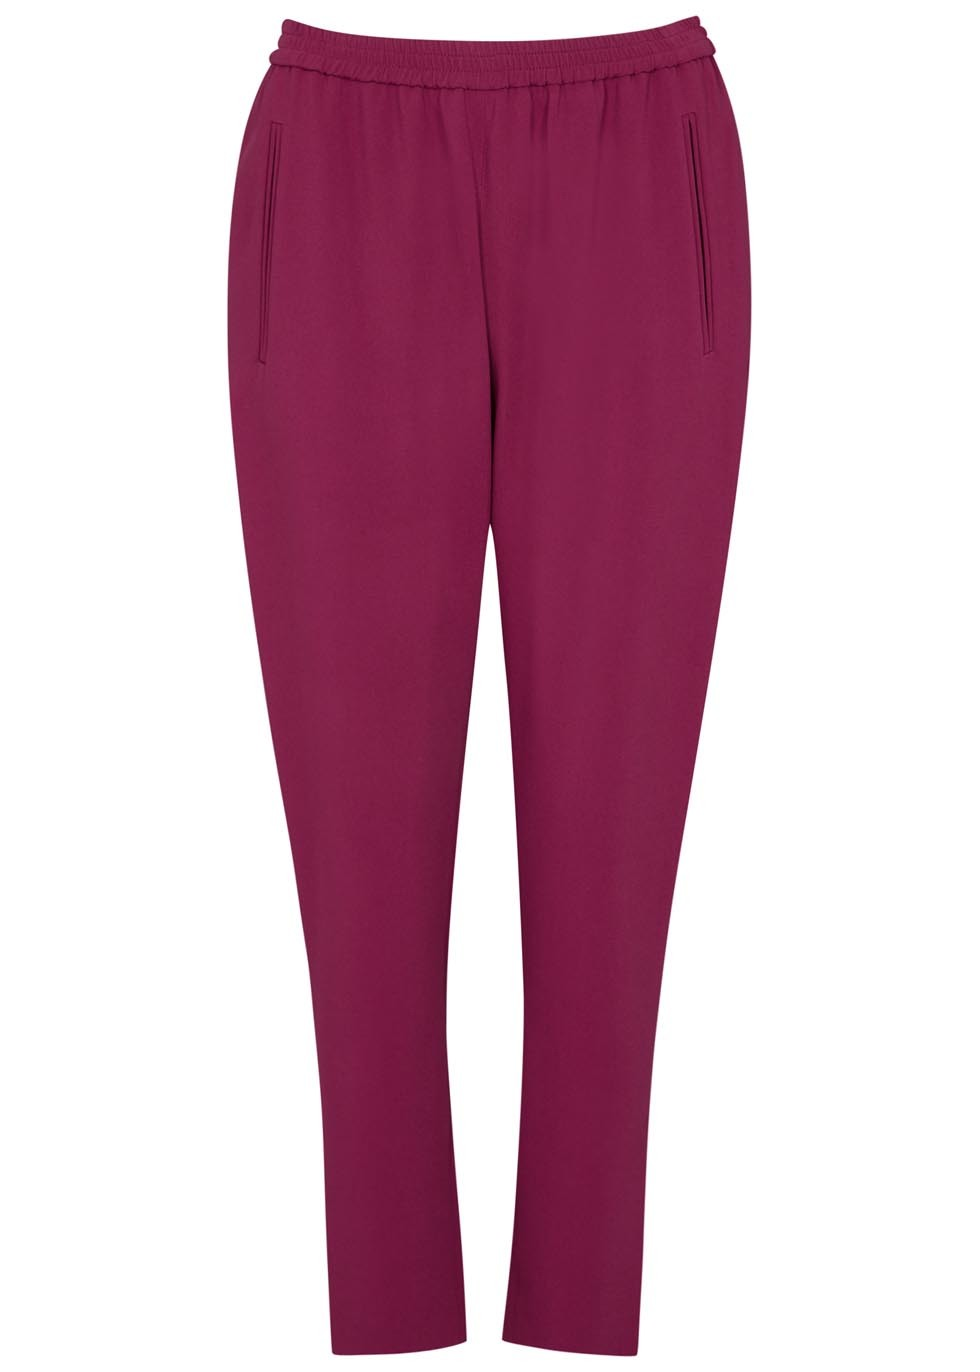 Tamara Plum Cady Jogging Trousers - pattern: plain; style: peg leg; waist: high rise; predominant colour: magenta; length: ankle length; fibres: polyester/polyamide - 100%; waist detail: feature waist detail; texture group: crepes; fit: tapered; pattern type: fabric; occasions: creative work; season: s/s 2016; wardrobe: highlight